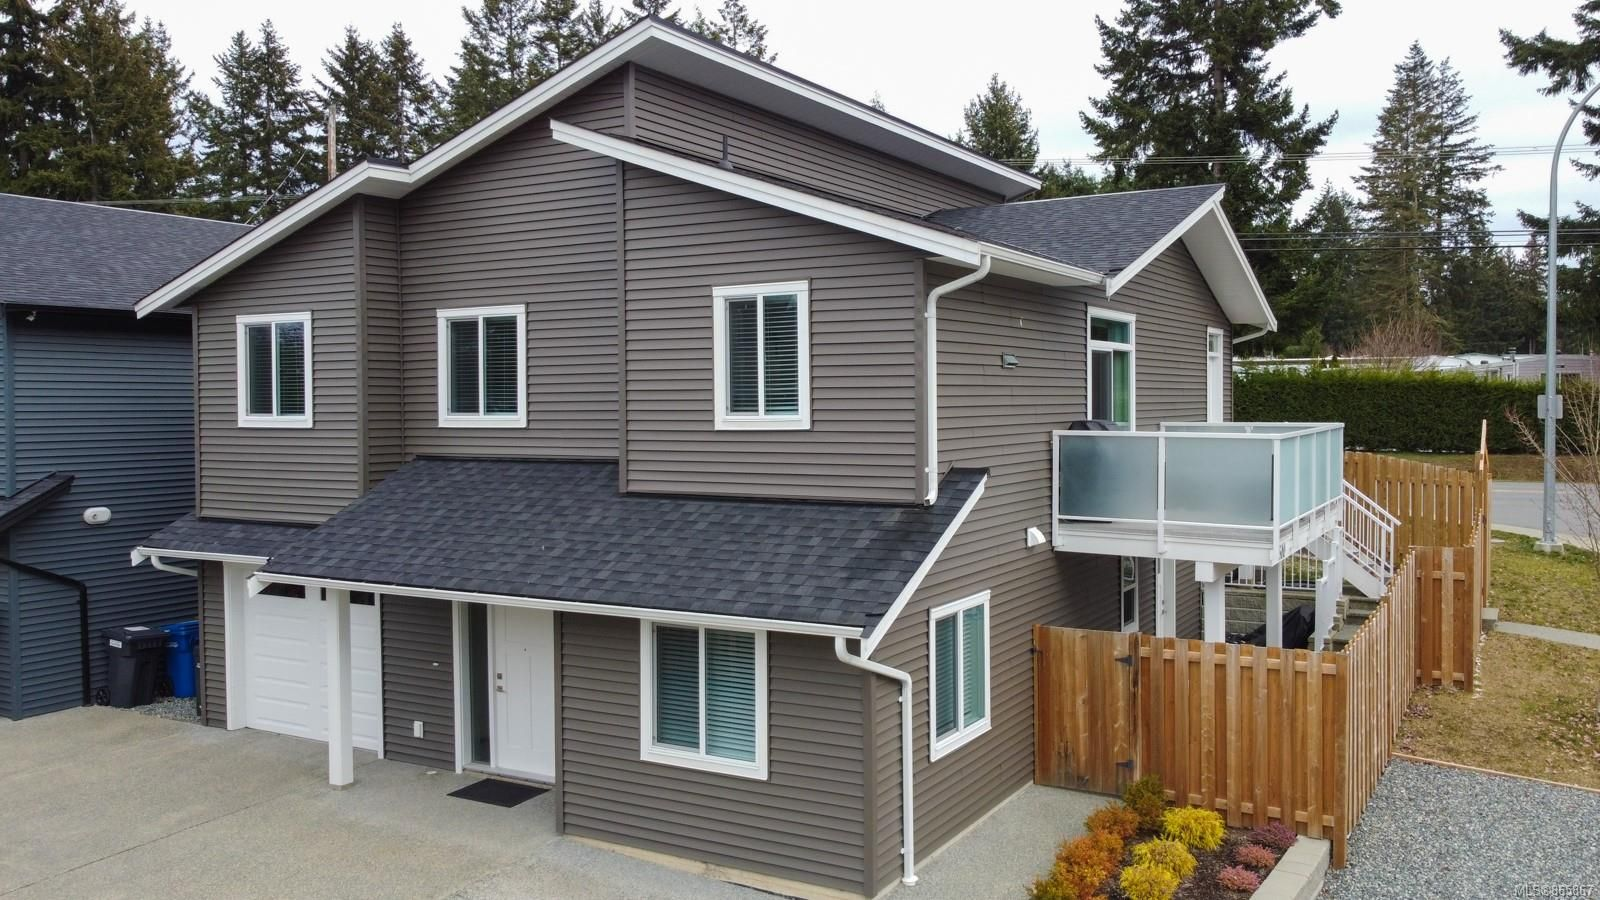 Main Photo: 500 Doreen Pl in : Na Pleasant Valley House for sale (Nanaimo)  : MLS®# 865867